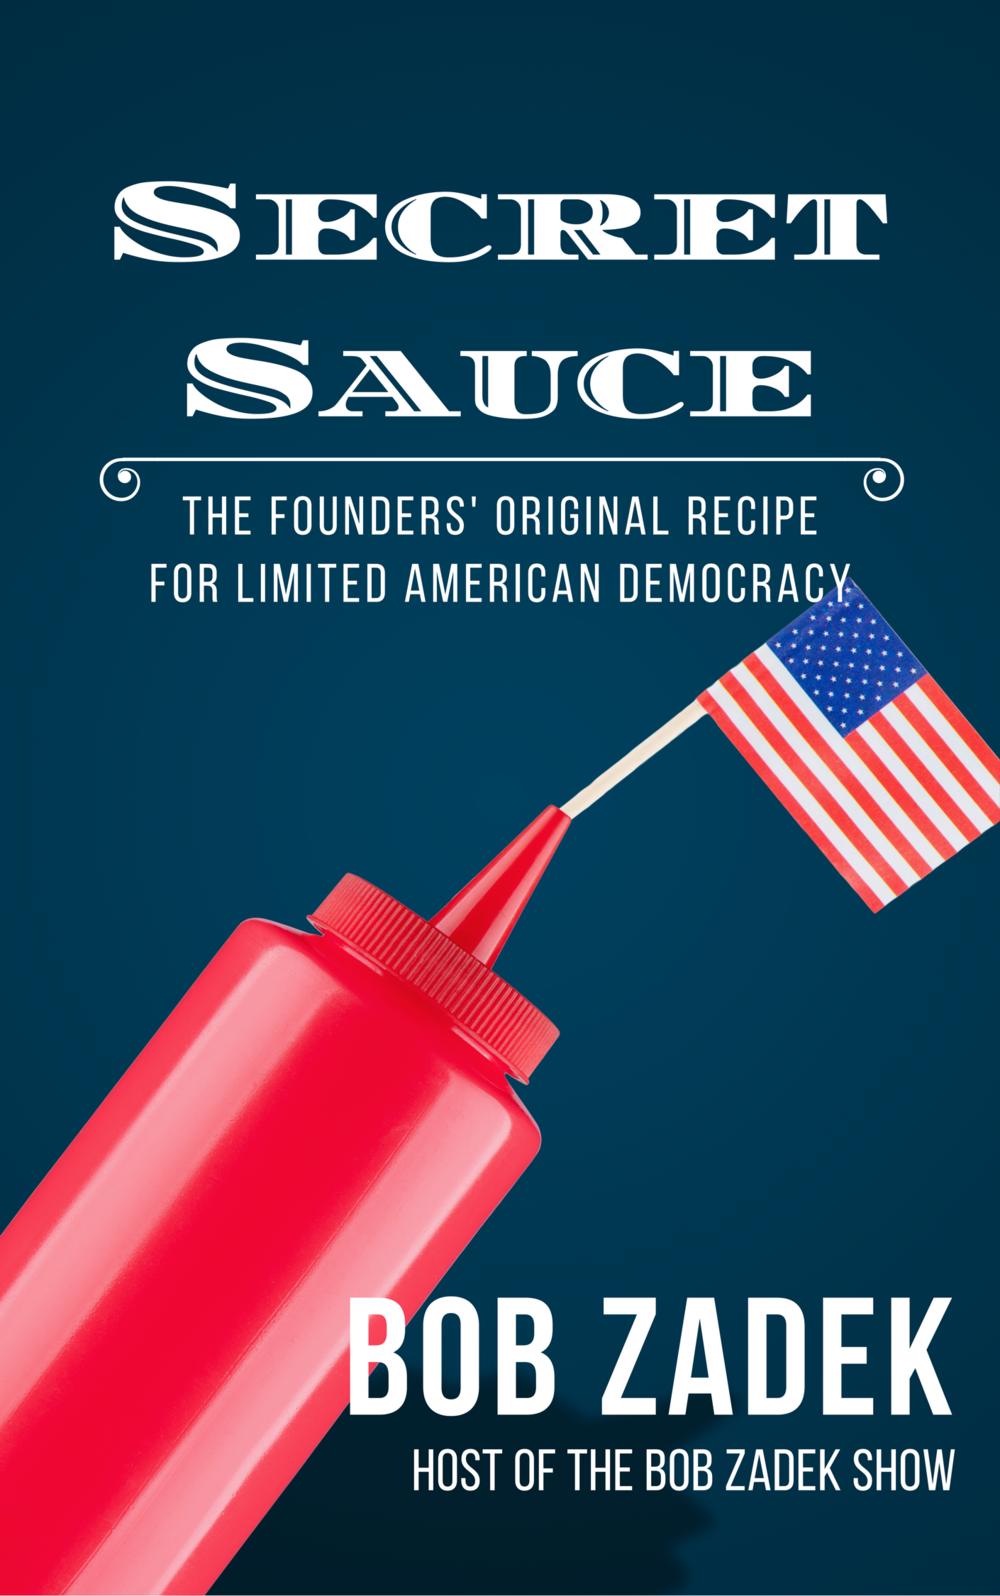 Is there such a thing as too much democracy? - The Founders thought so... Read Bob's new free ebook, featuring your favorite thinkers' combined recipe for renewed American democracy.